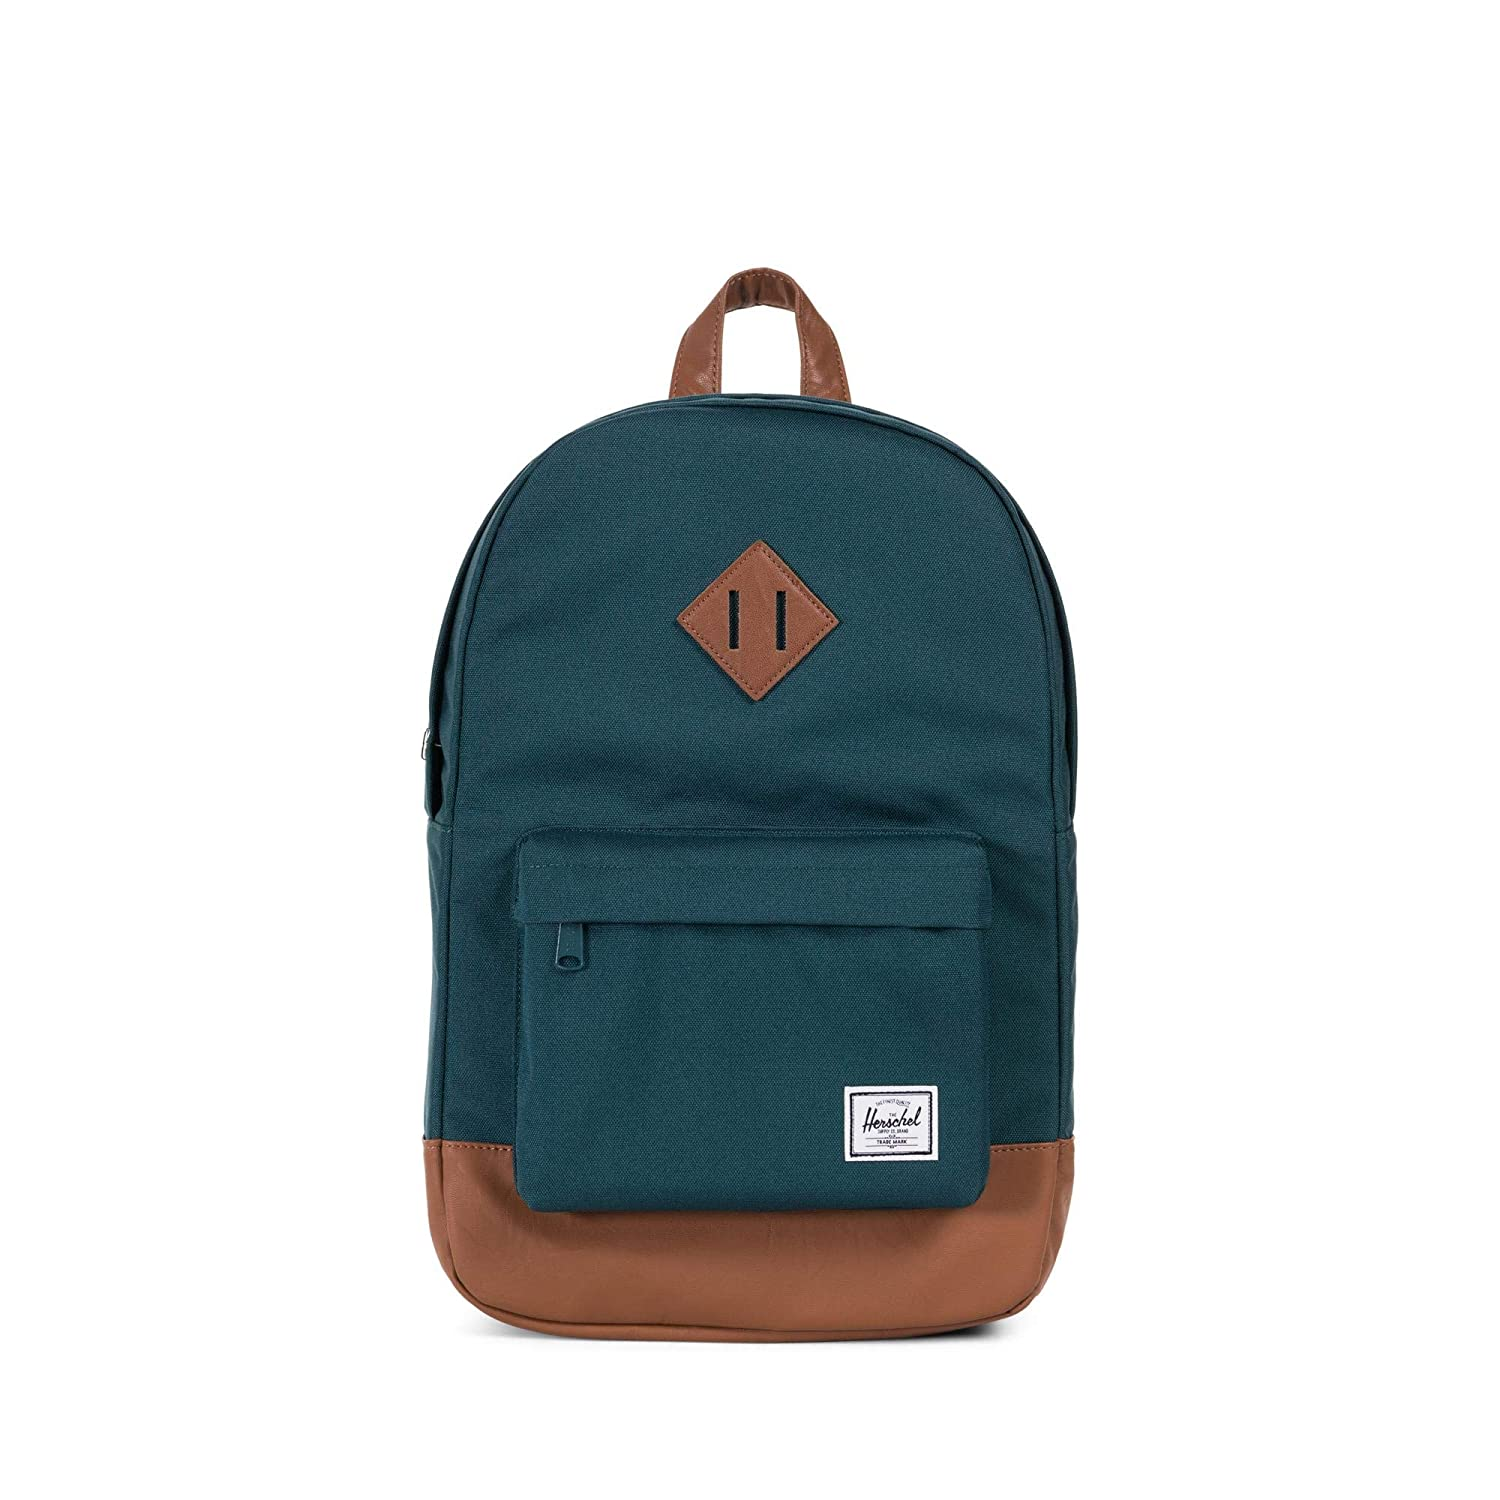 Herschel Heritage Mid-Volume Backpack Deep Teal//Tan Synthetic Leather One Size Herschel Luggage child code 10019-02108-OS